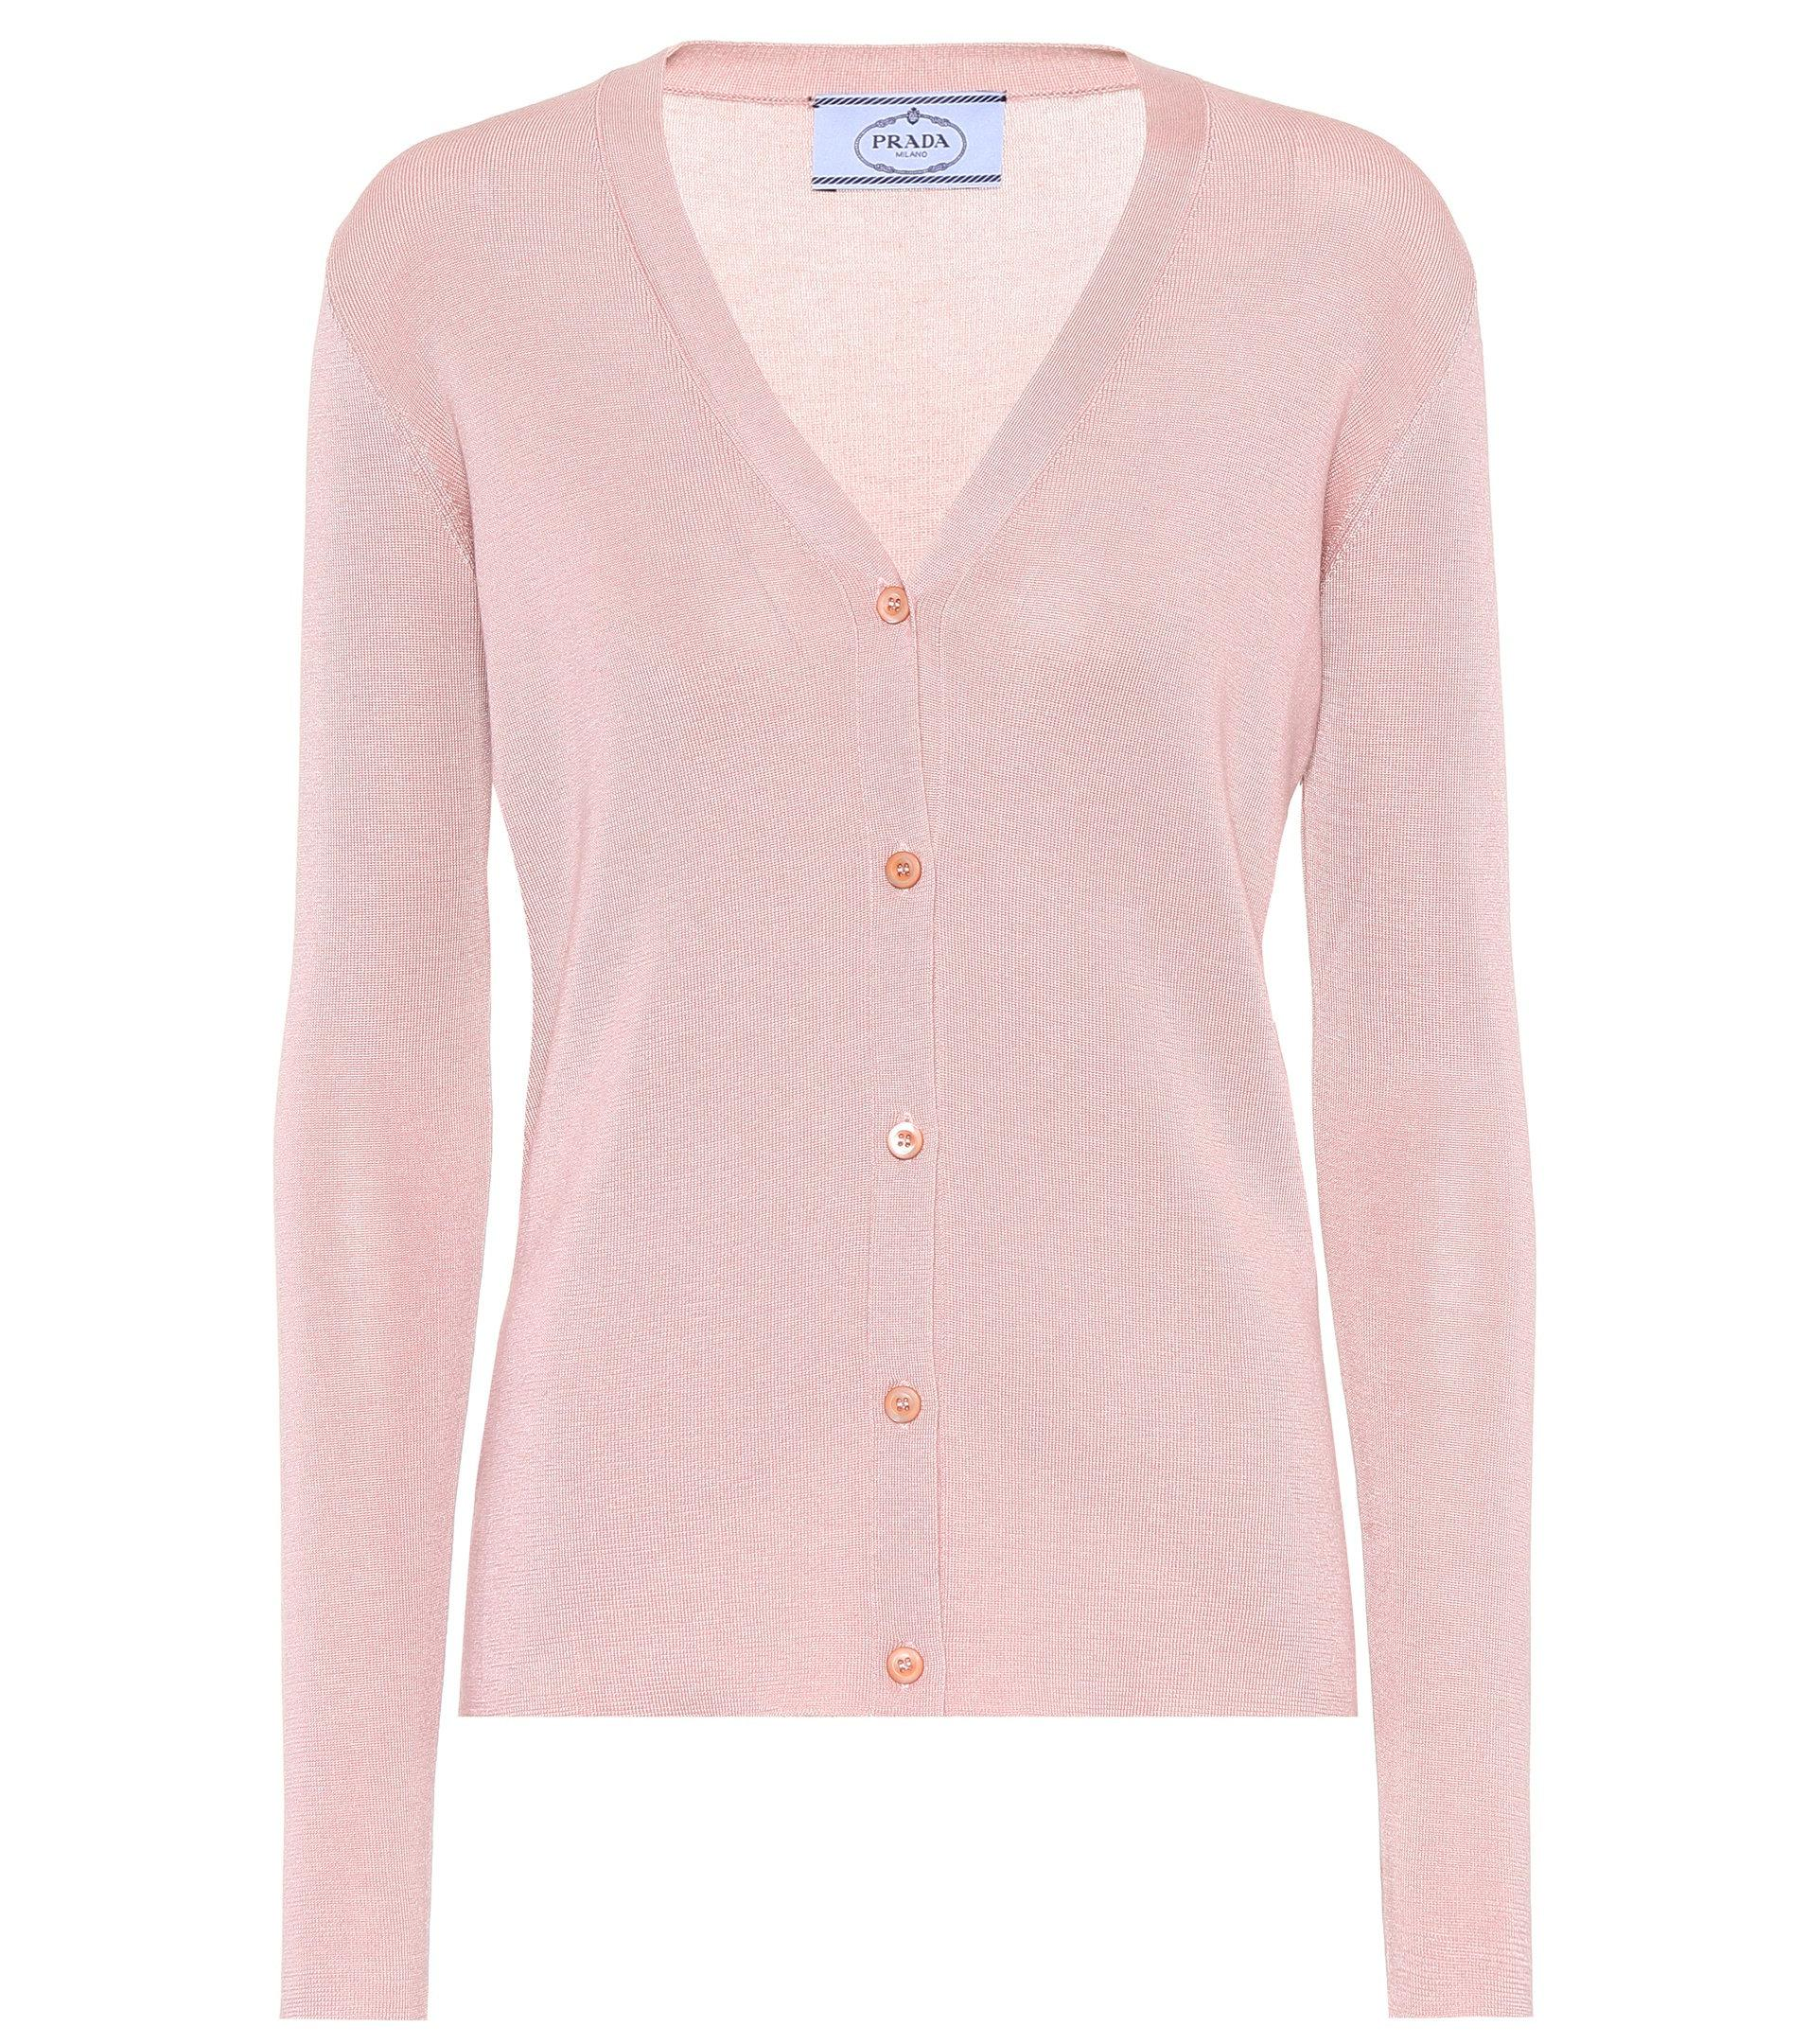 Prada Cashmere & Silk Embellished Cardigan Cost Clearance New Buy Cheap Best Store To Get Buy Cheap Shop REviFrvN